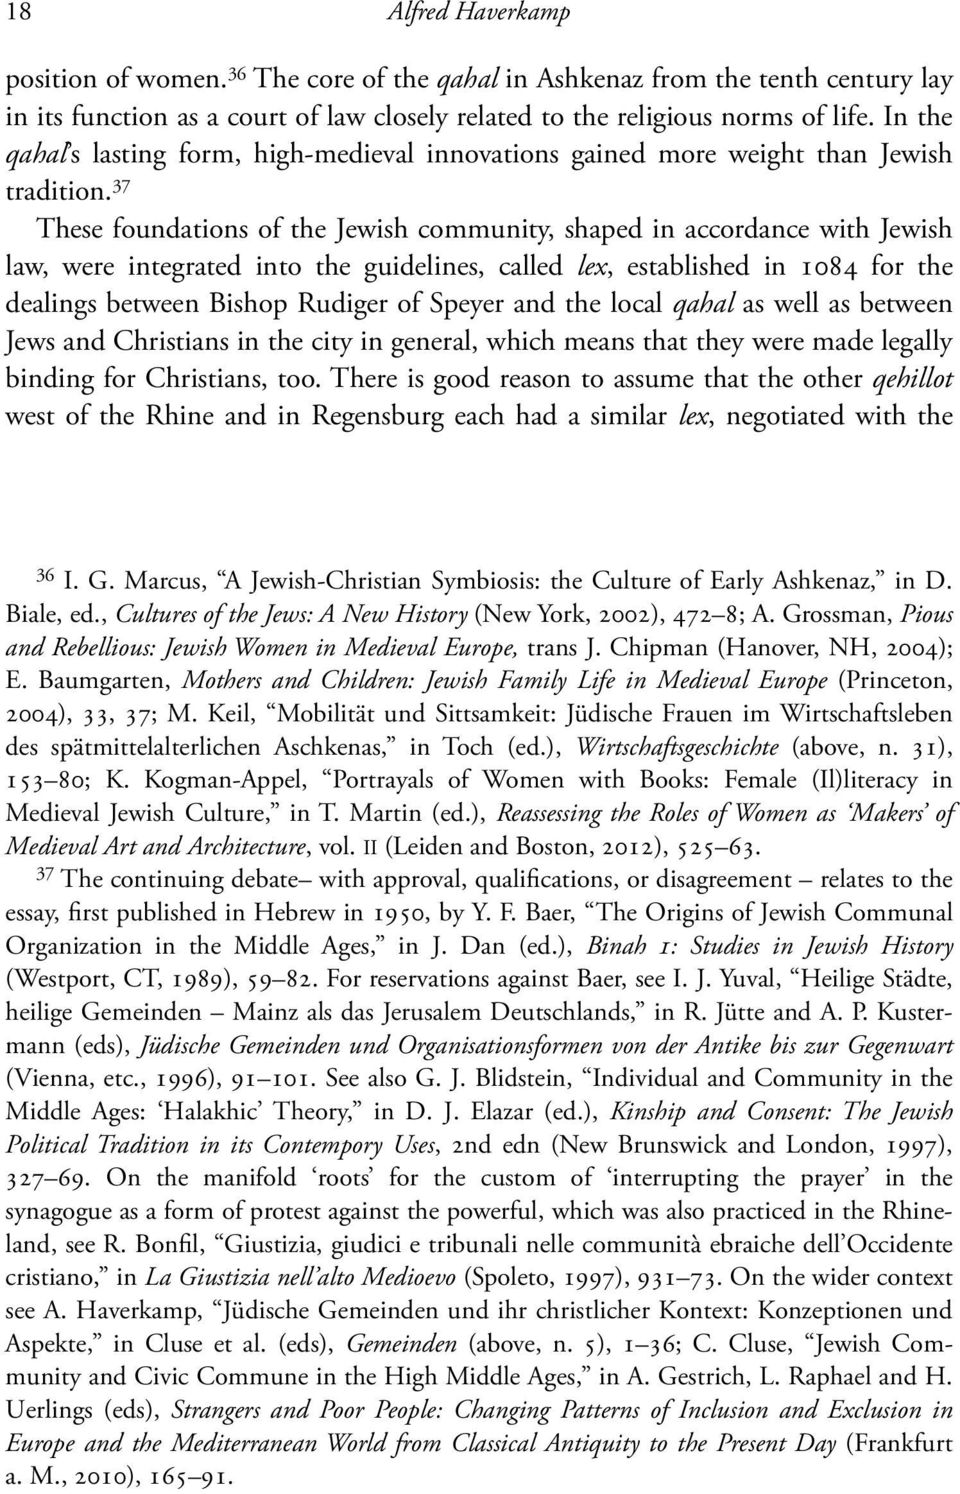 37 These foundations of the Jewish community, shaped in accordance with Jewish law, were integrated into the guidelines, called lex, established in 1084 for the dealings between Bishop Rudiger of